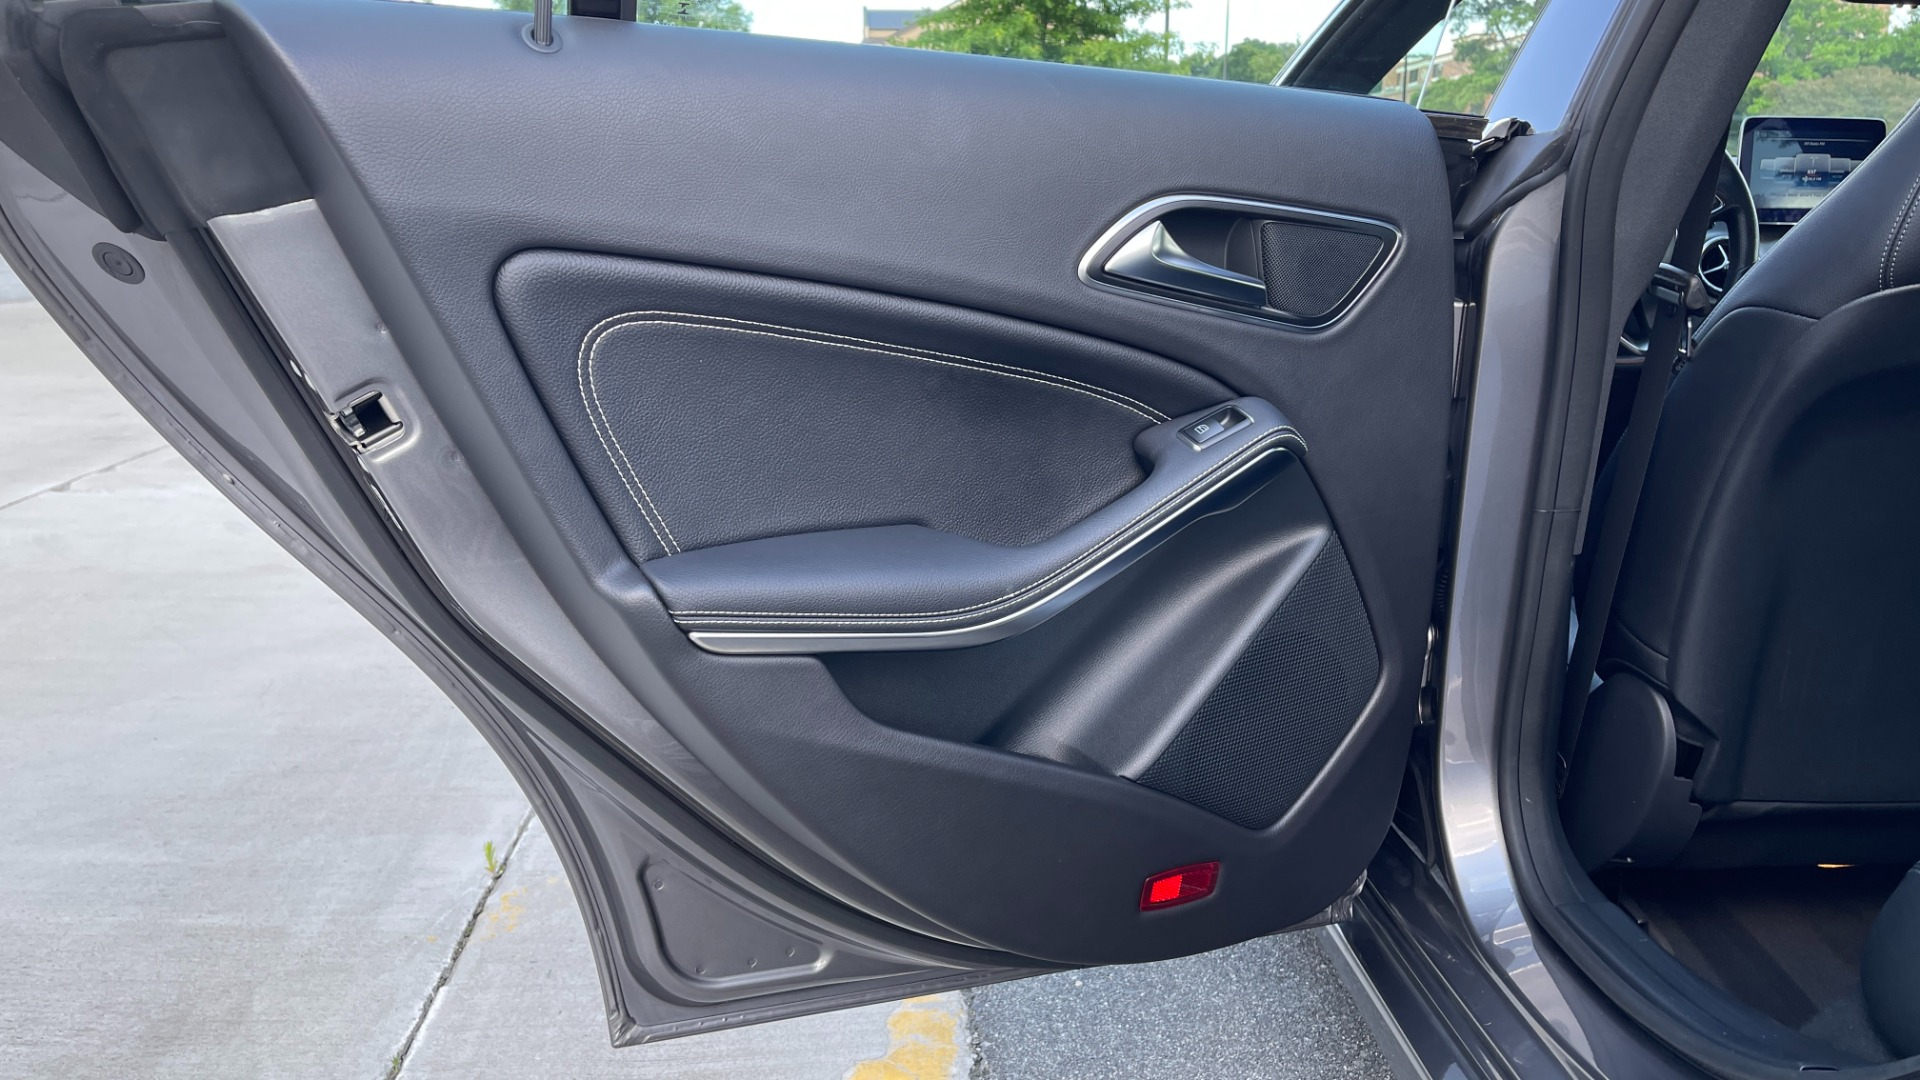 Used 2019 Mercedes-Benz CLA 250 4MATIC PREM & CONV PKG / APPLE / PANO-ROOF / H/K SND / REARVIEW for sale $29,795 at Formula Imports in Charlotte NC 28227 53